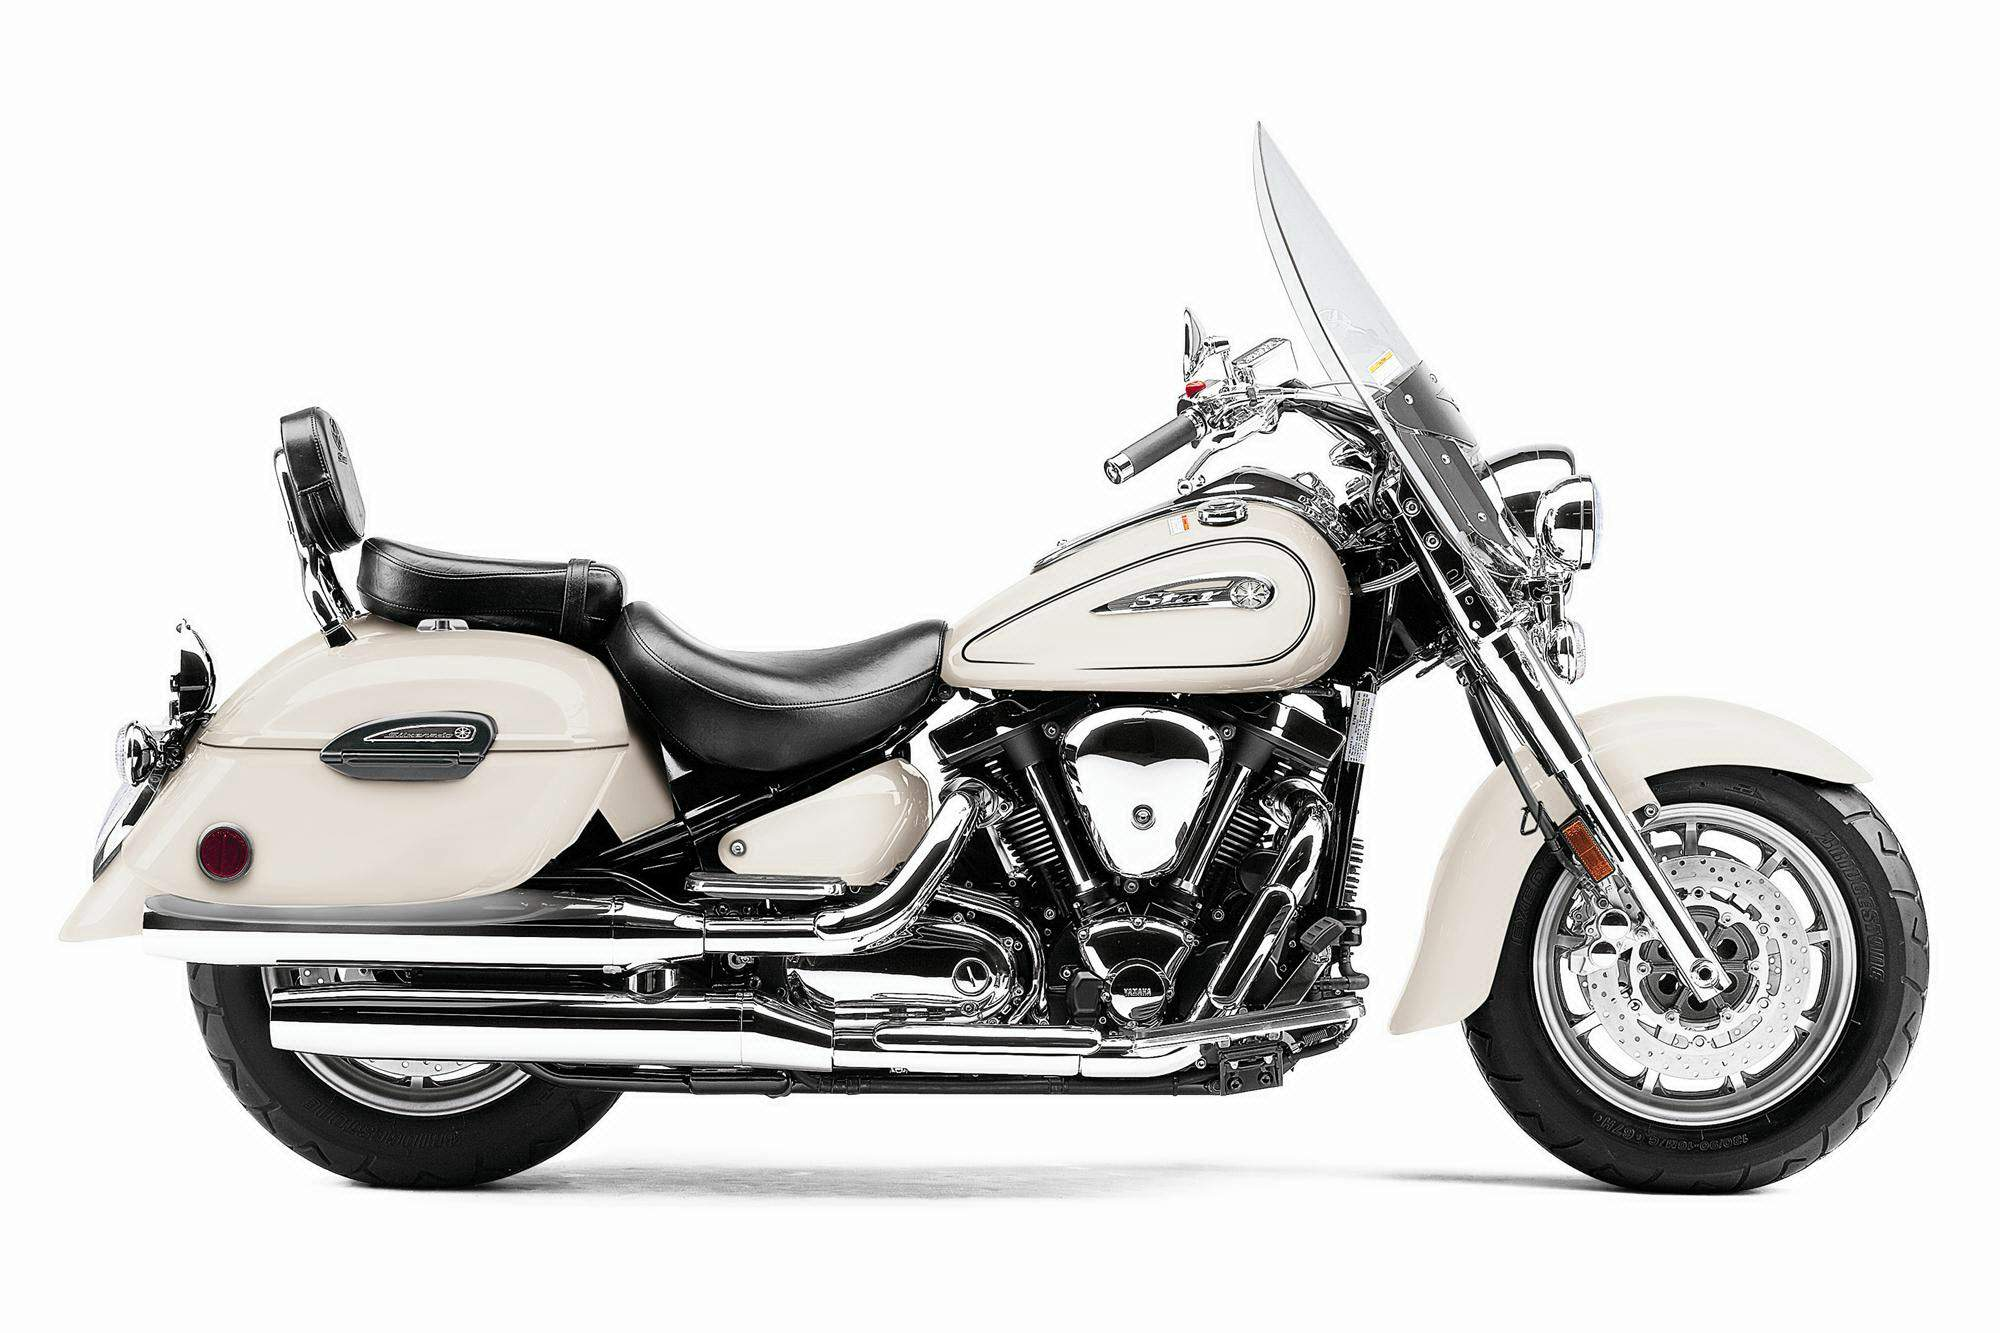 Yamaha Roadstar Backgrounds, Compatible - PC, Mobile, Gadgets| 2000x1333 px